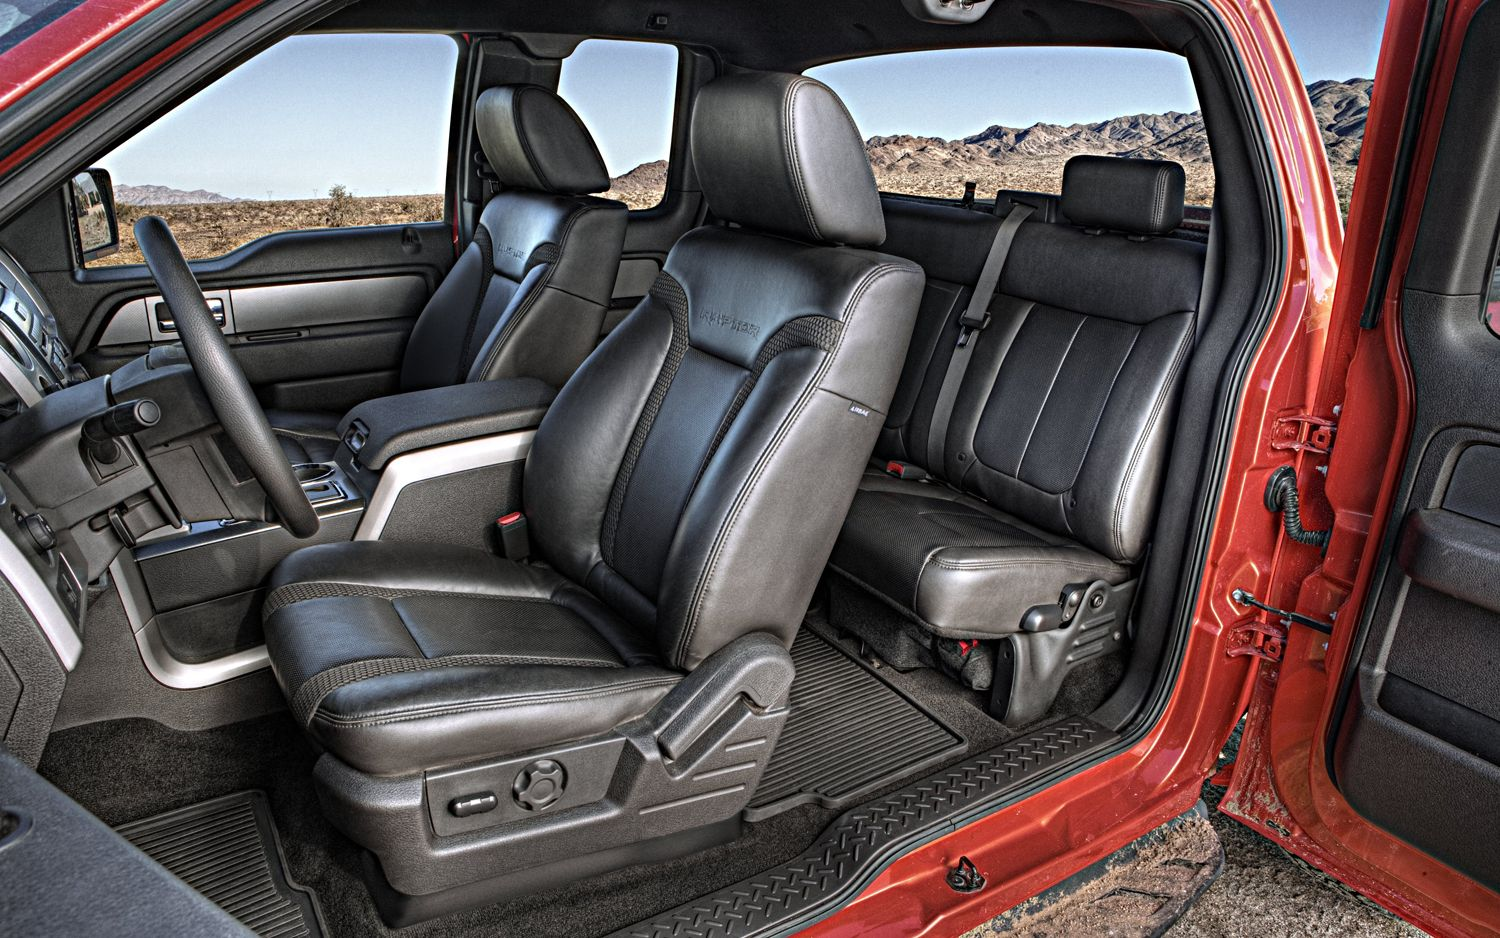 2010 Ford F 150 Svt Raptor Interior Mudder Trucks Pinterest Svt Raptor Ford And Ford Trucks